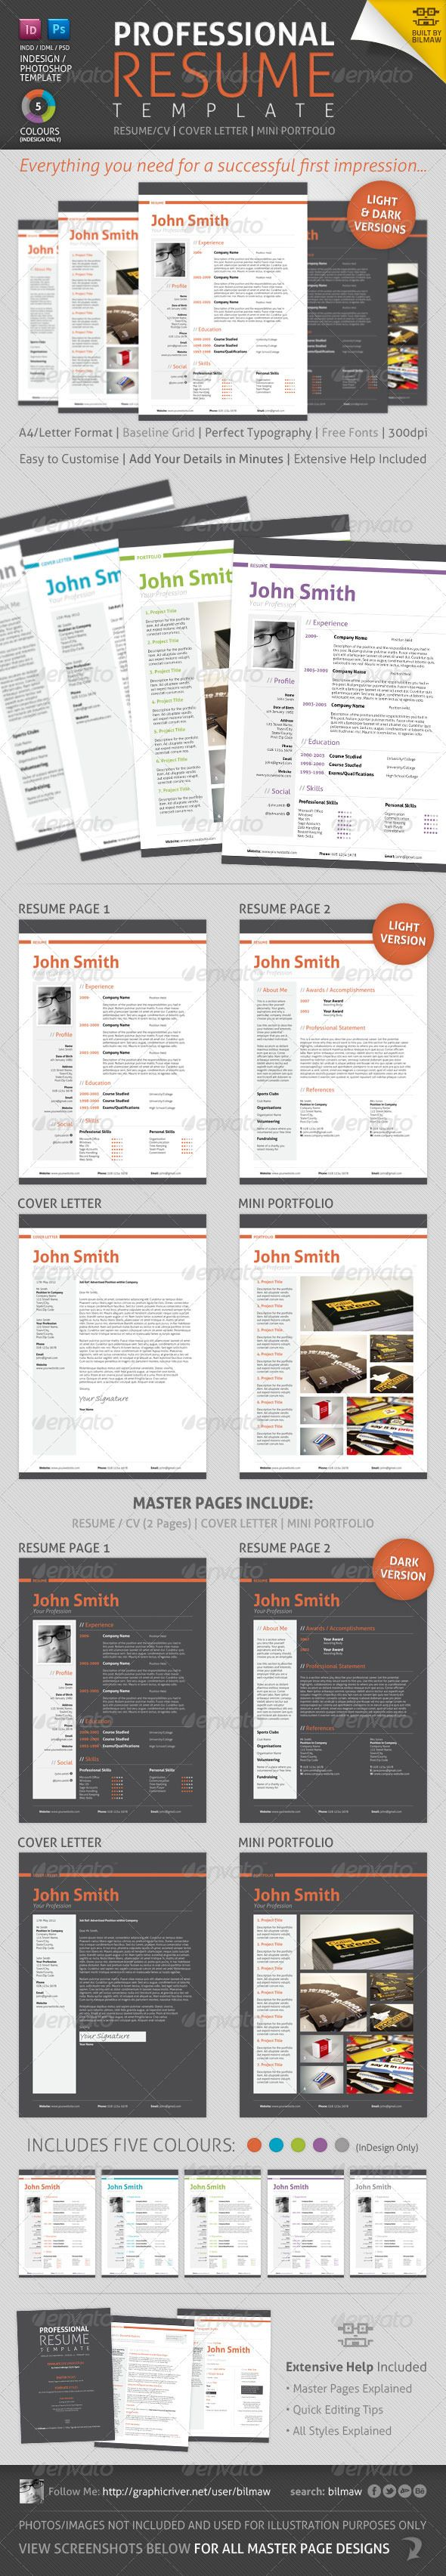 professional resume cv professional resume resume cv and stationery